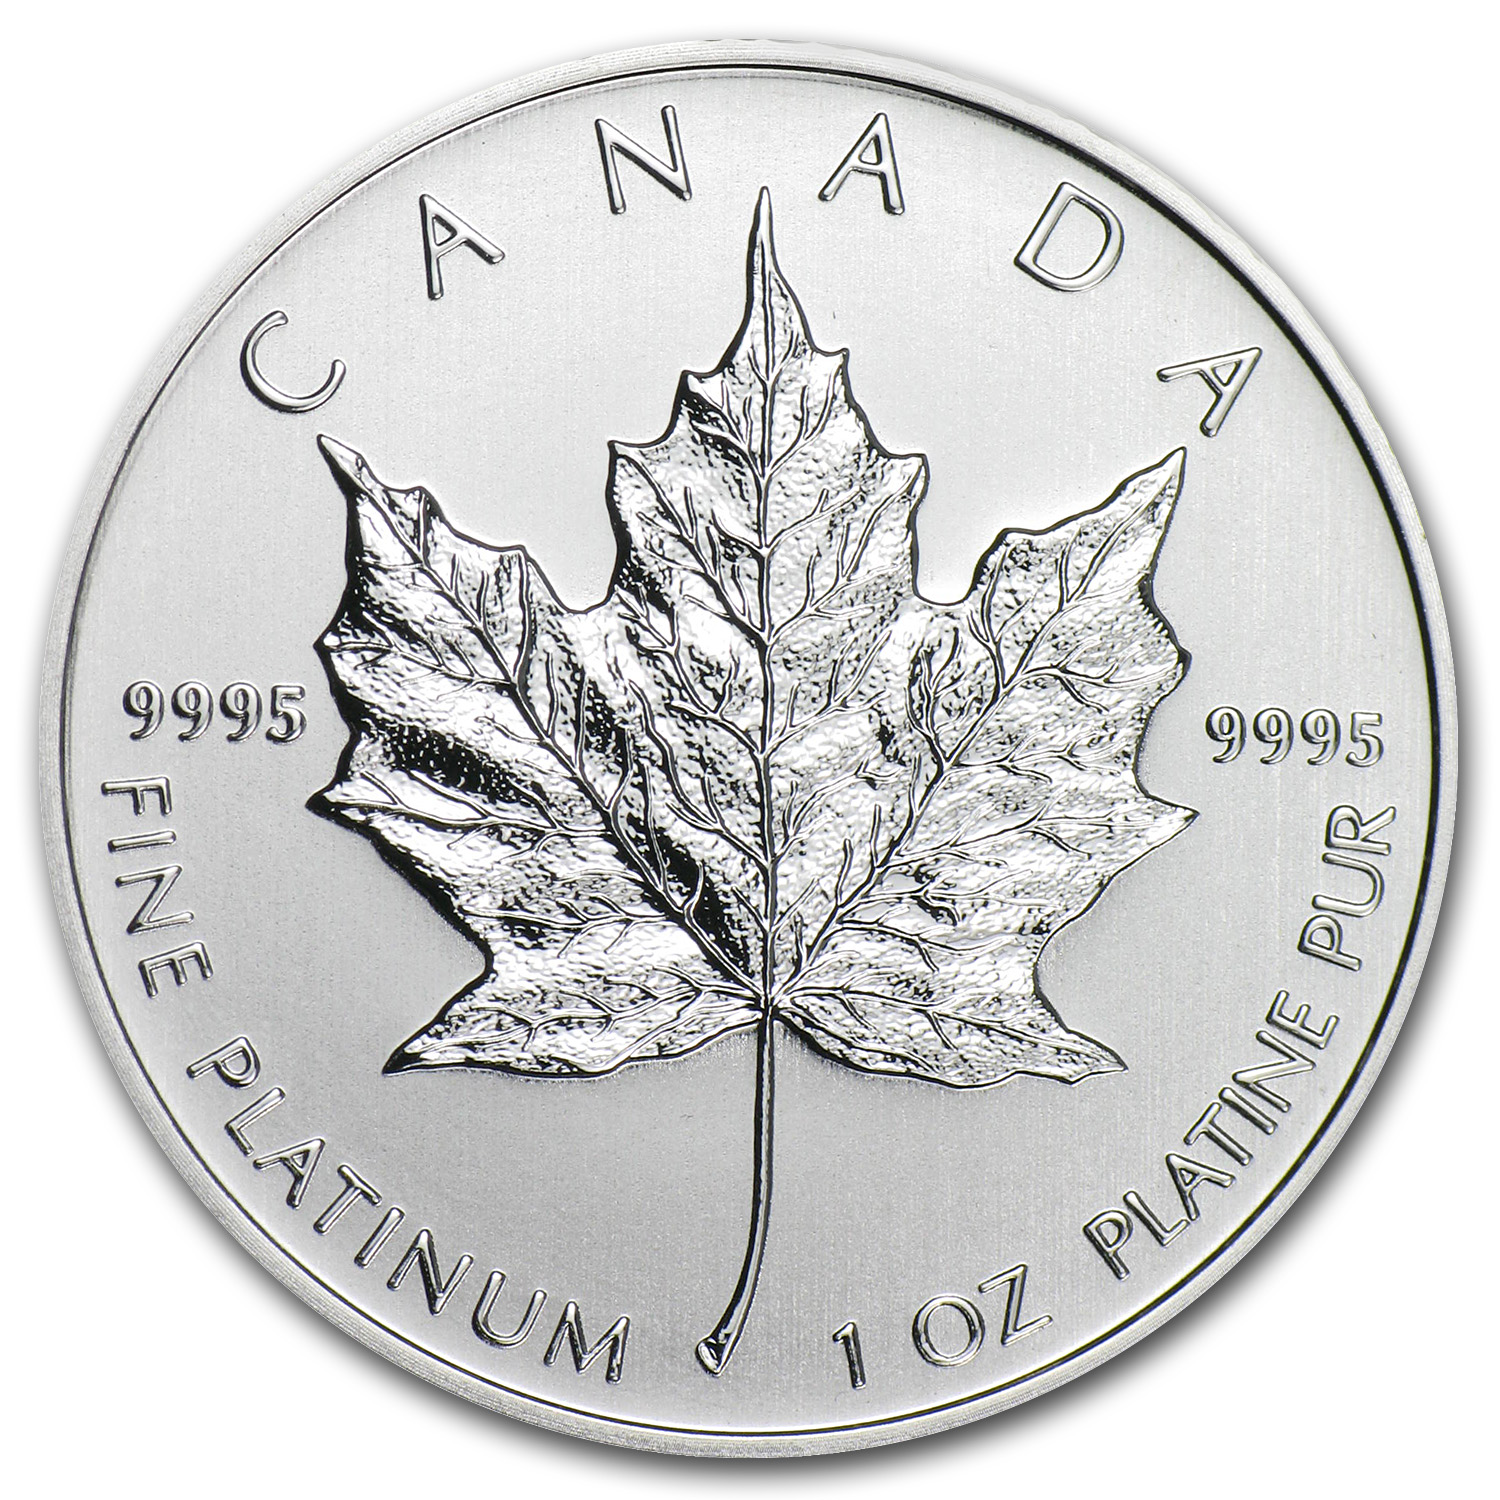 2013 Canada 1 oz Platinum Maple Leaf BU